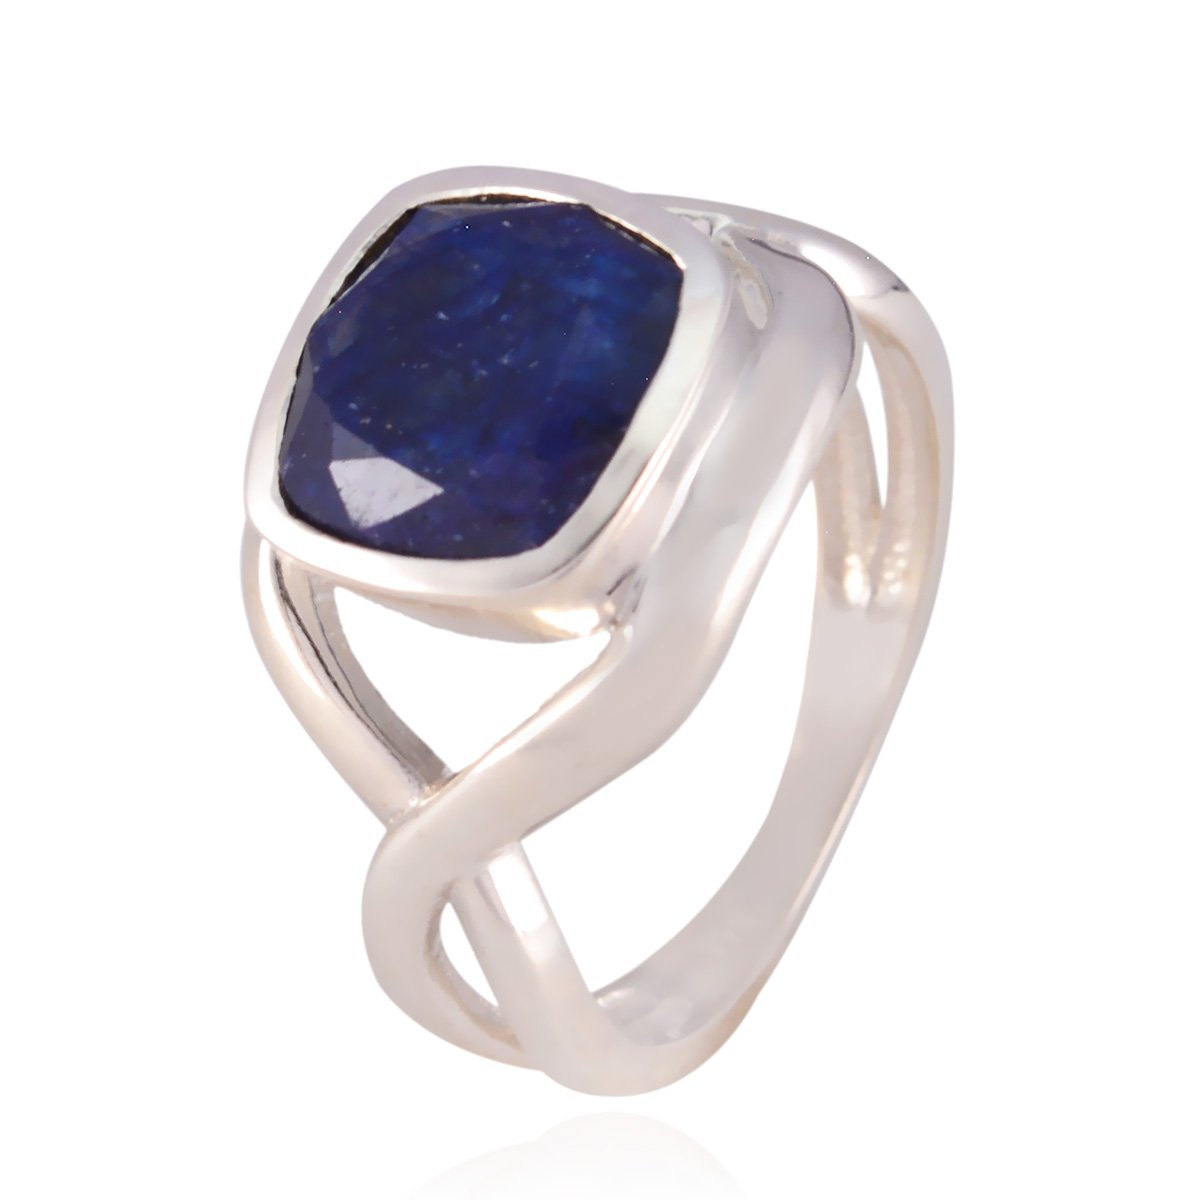 Nice Fashion Blue Indainsappire Natural Gemstone Ring Ornaments /& Accents Highest Selling Items Gift for Cyber Monday Phases of The Natural Gemstone Square Faceted Indainsappire Rings